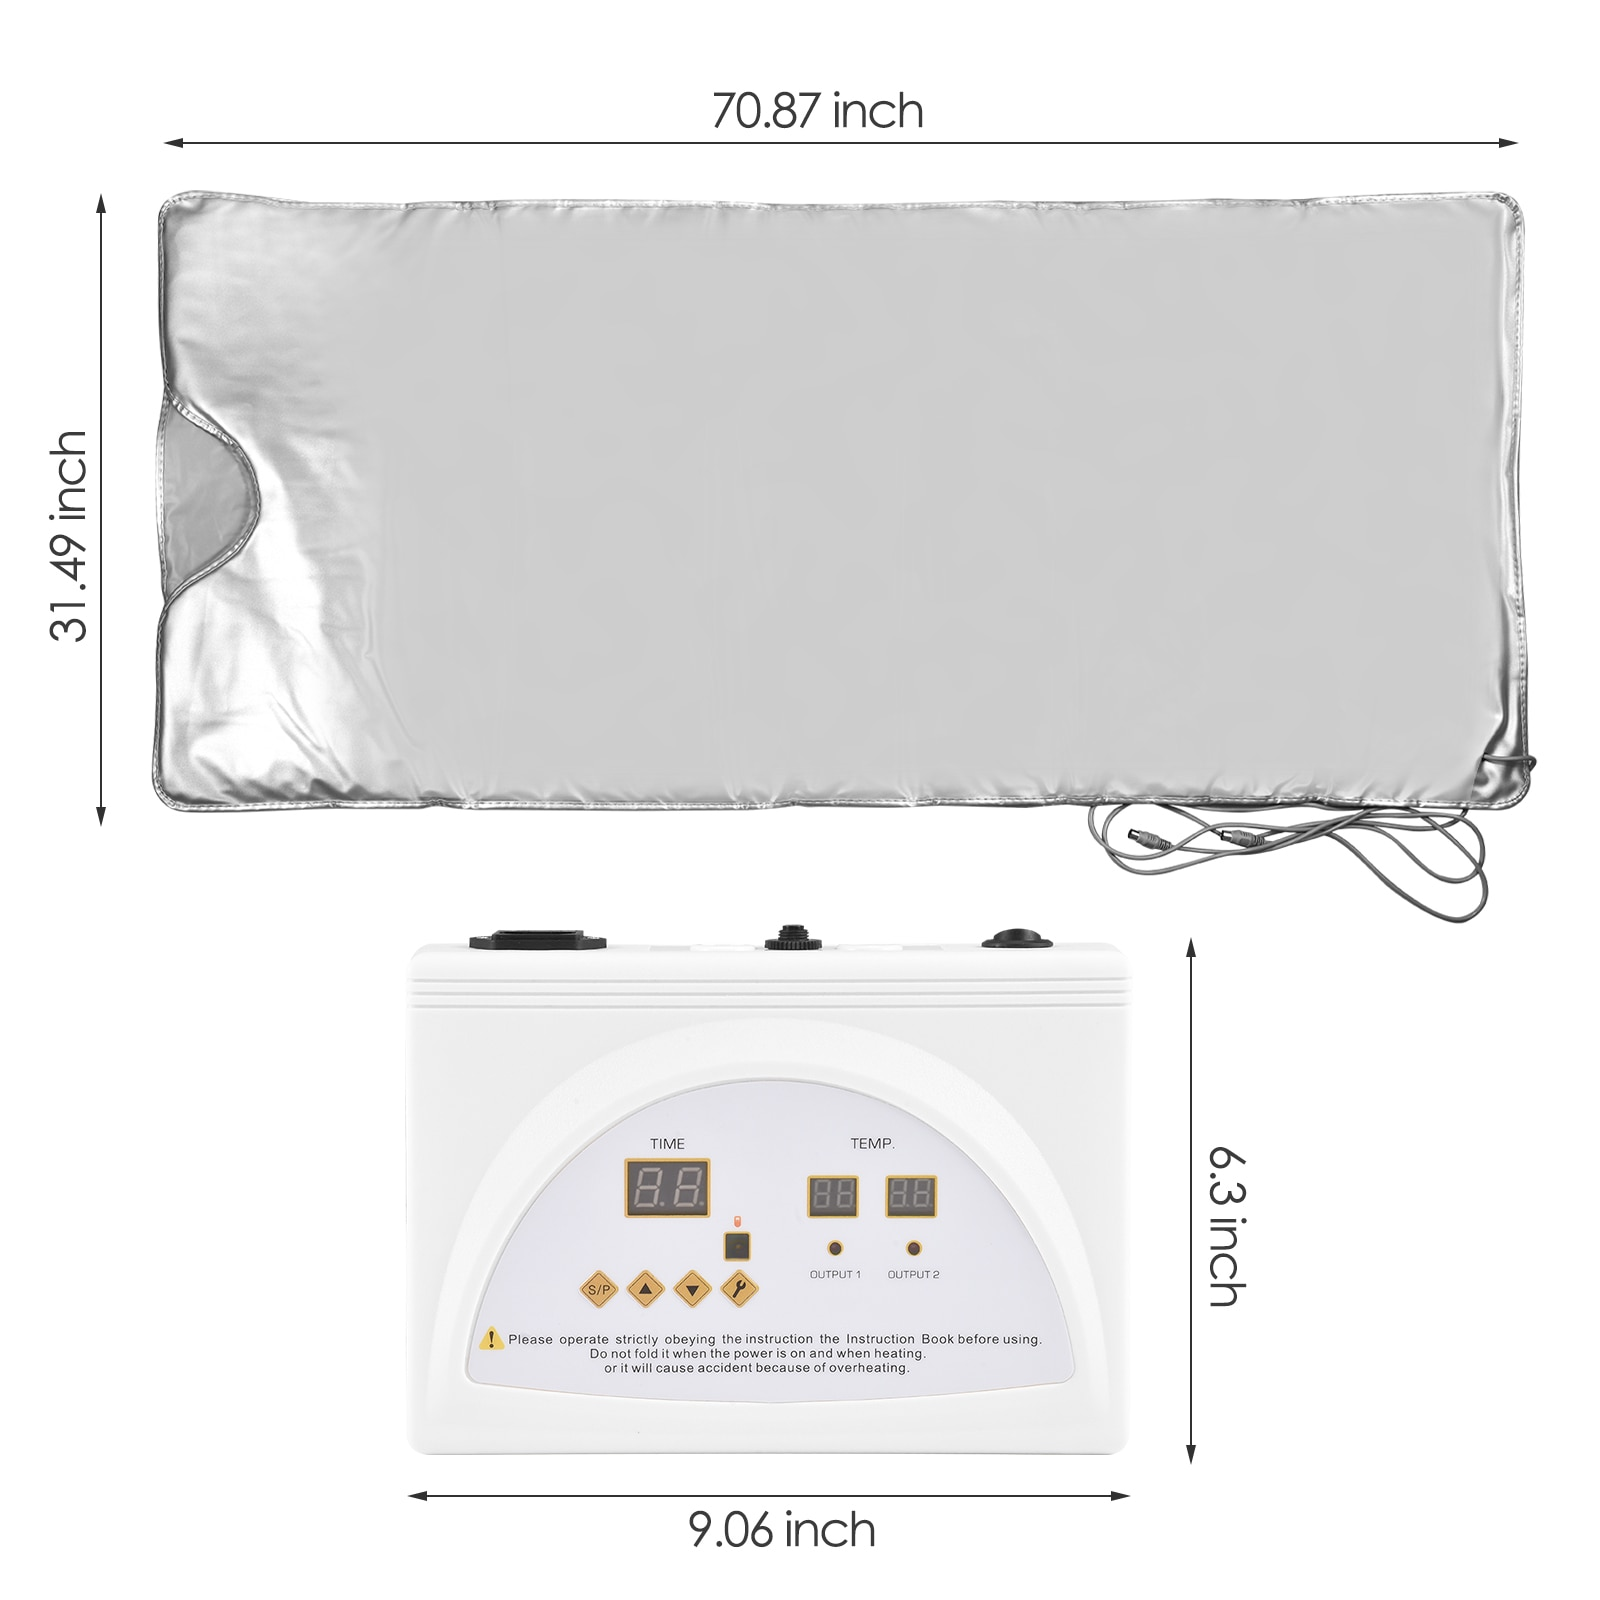 EU US 2 Zone Heating Sauna Blanket Romote Control Heating Blanket Body Weight Loss Sauna Detox Therapy Home Use enlarge